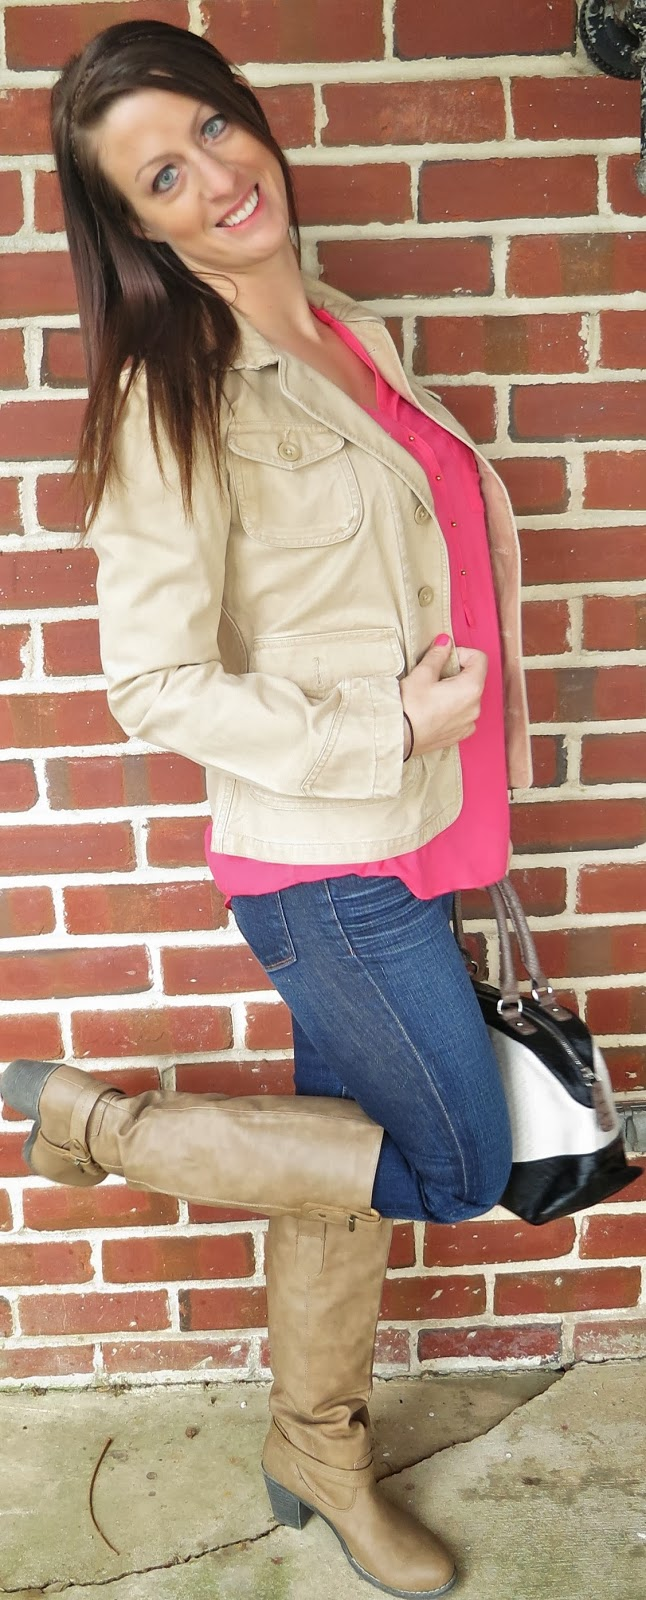 Boots, Fashion, ootd, Outfit Ideas, outfit of the day, Outfits, pink,